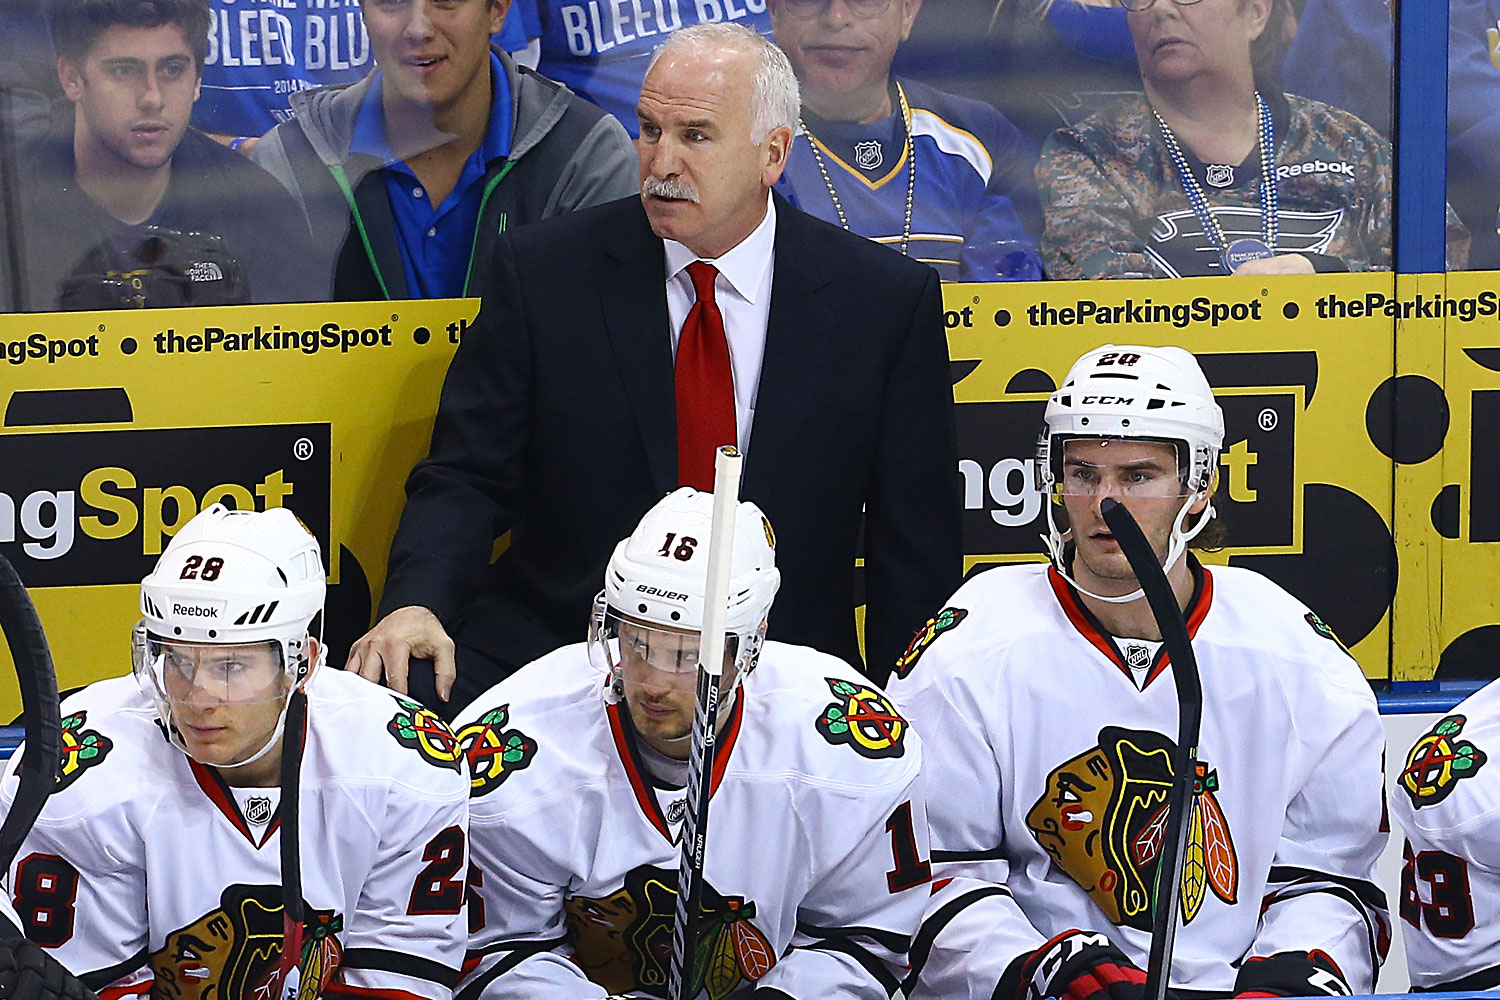 Chicago Blackhawks head coach Joel Quenneville during the first period in Game 1 of the NHL Playoffs between the St. Louis Blues and the Chicago Blackhawks at Scottrade Center in St. Louis, Missouri.